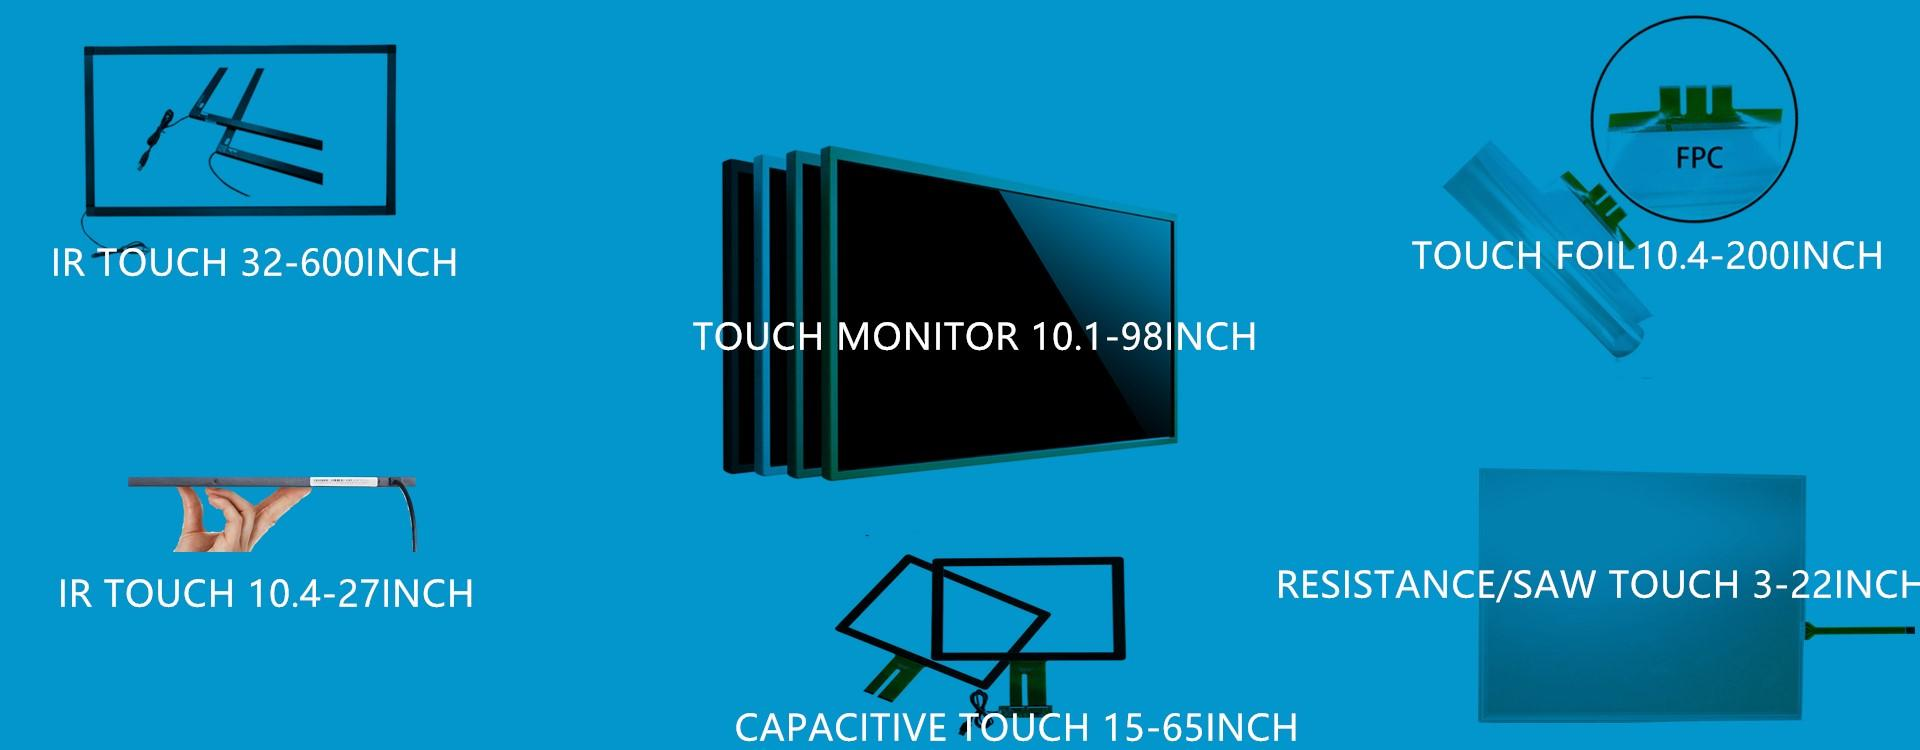 80 inch ir touch frame,multi touch screen ,touch panel ,infrared touch  overlay kit,touch all in one,touch koisk 16:9